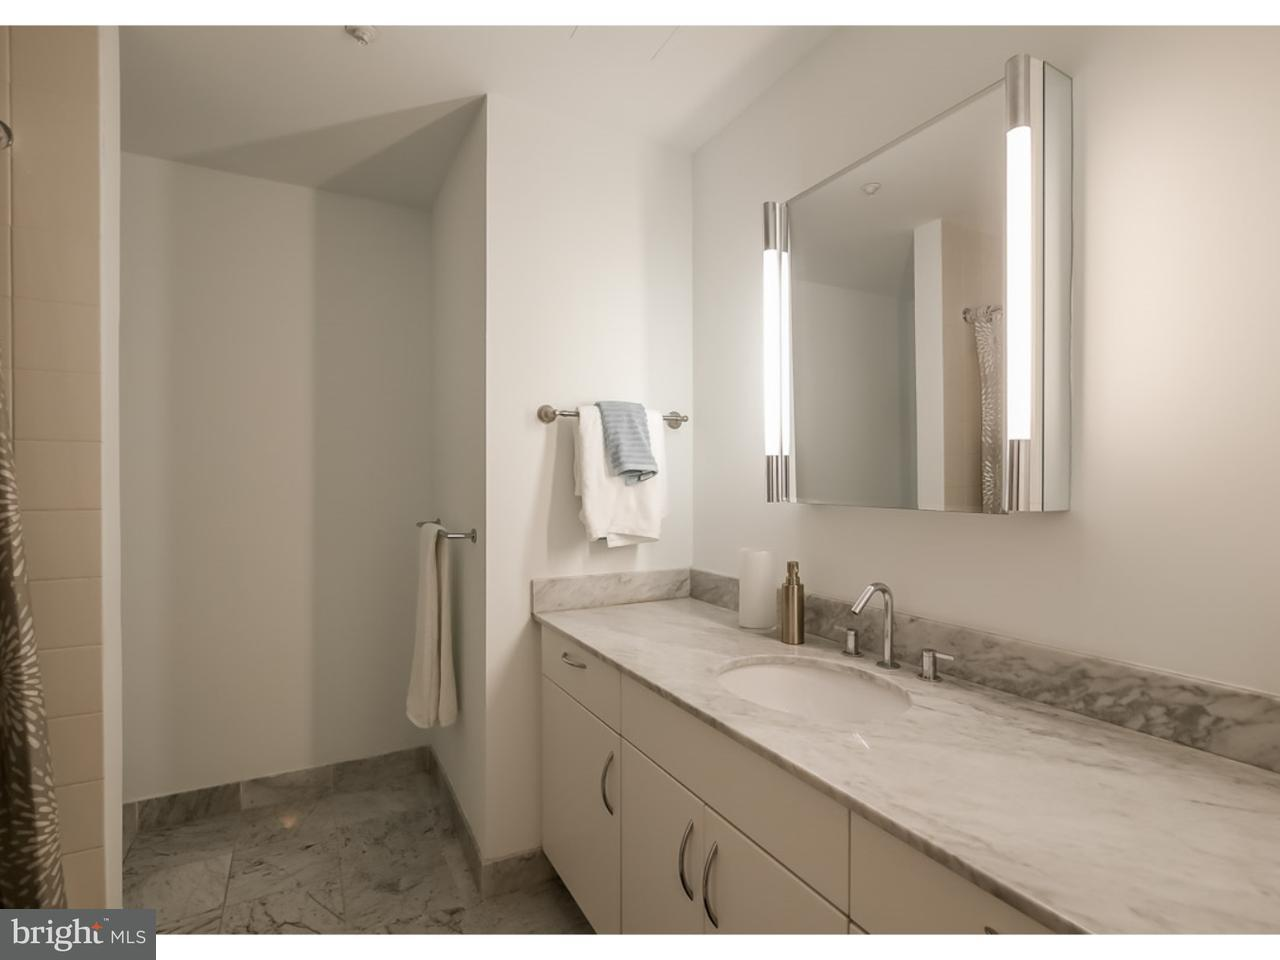 Additional photo for property listing at 219 S 18TH ST #502  Philadelphia, Пенсильвания 19103 Соединенные Штаты